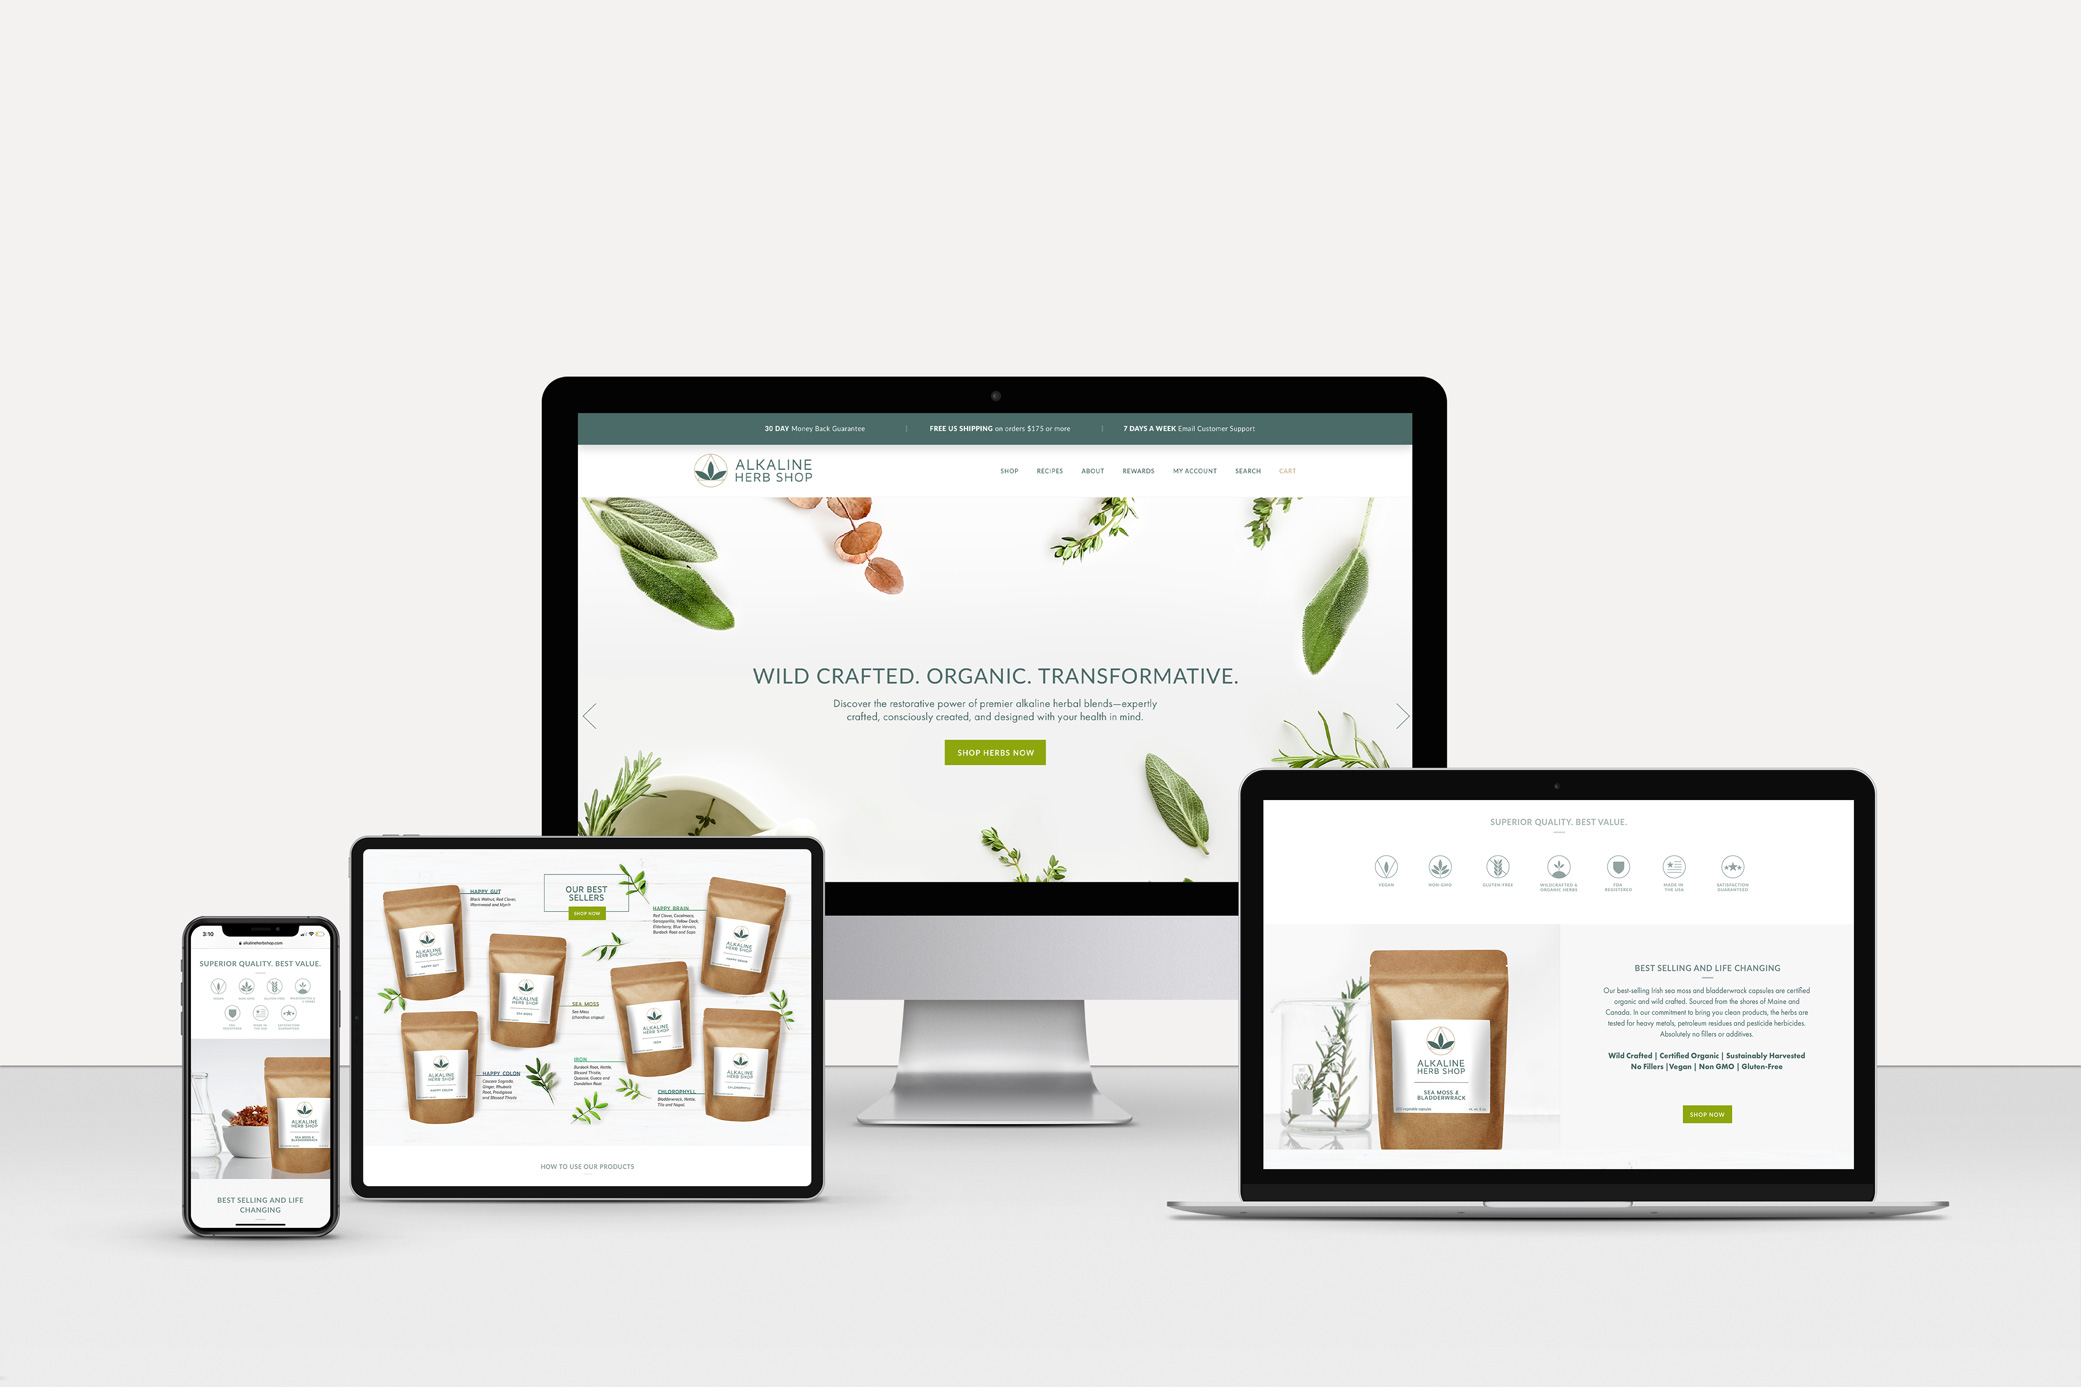 Alkaline Herb Shop supplement branding and clean website design with and images of fresh herbs.